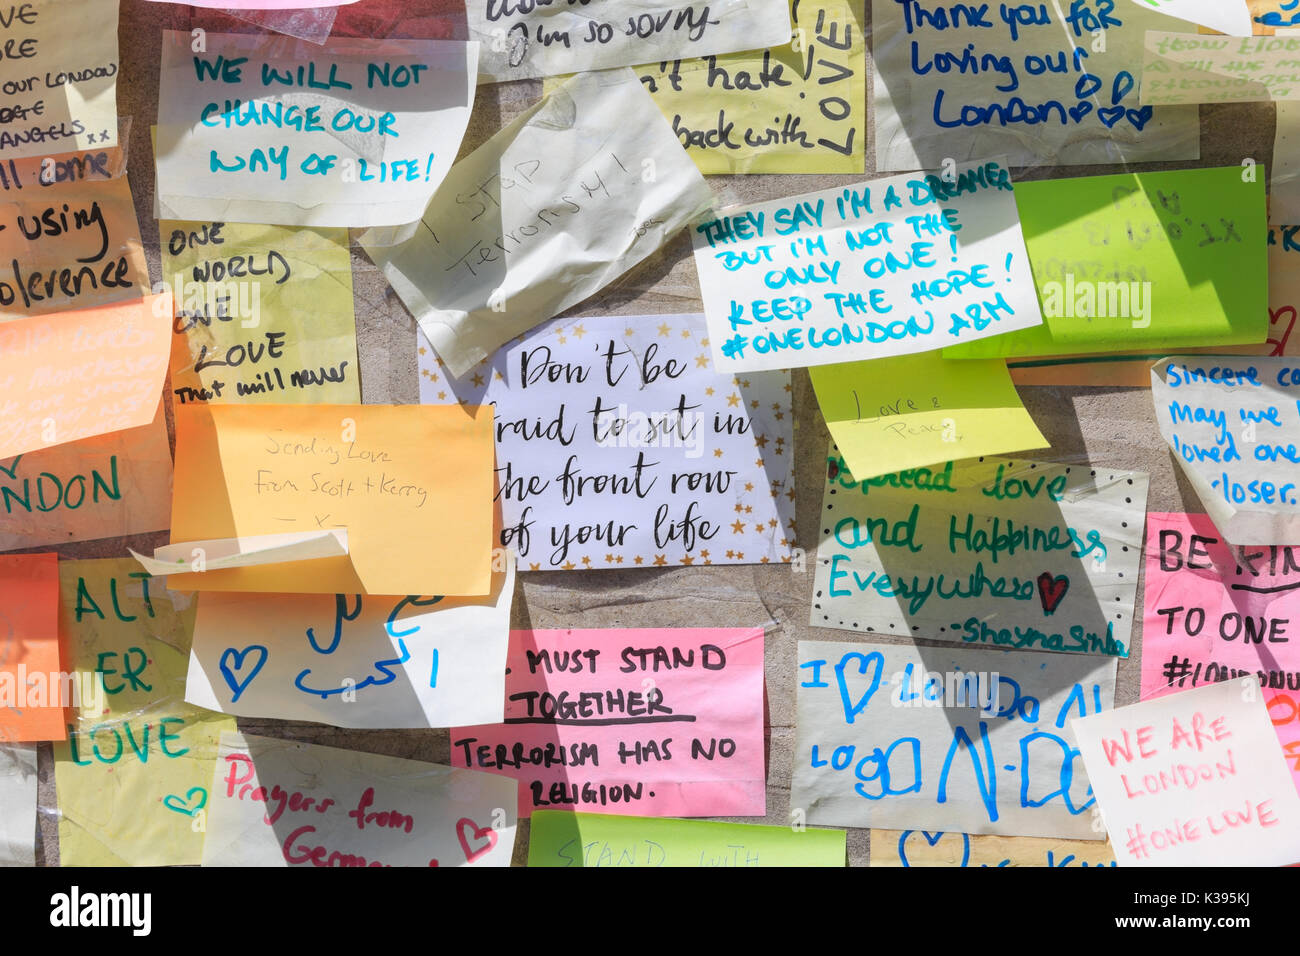 Wall of condolence cards, notes, tributes and flowers at vigil near the scene of the 2017 London Bridge and Borough Market terrorist attacks and after - Stock Image